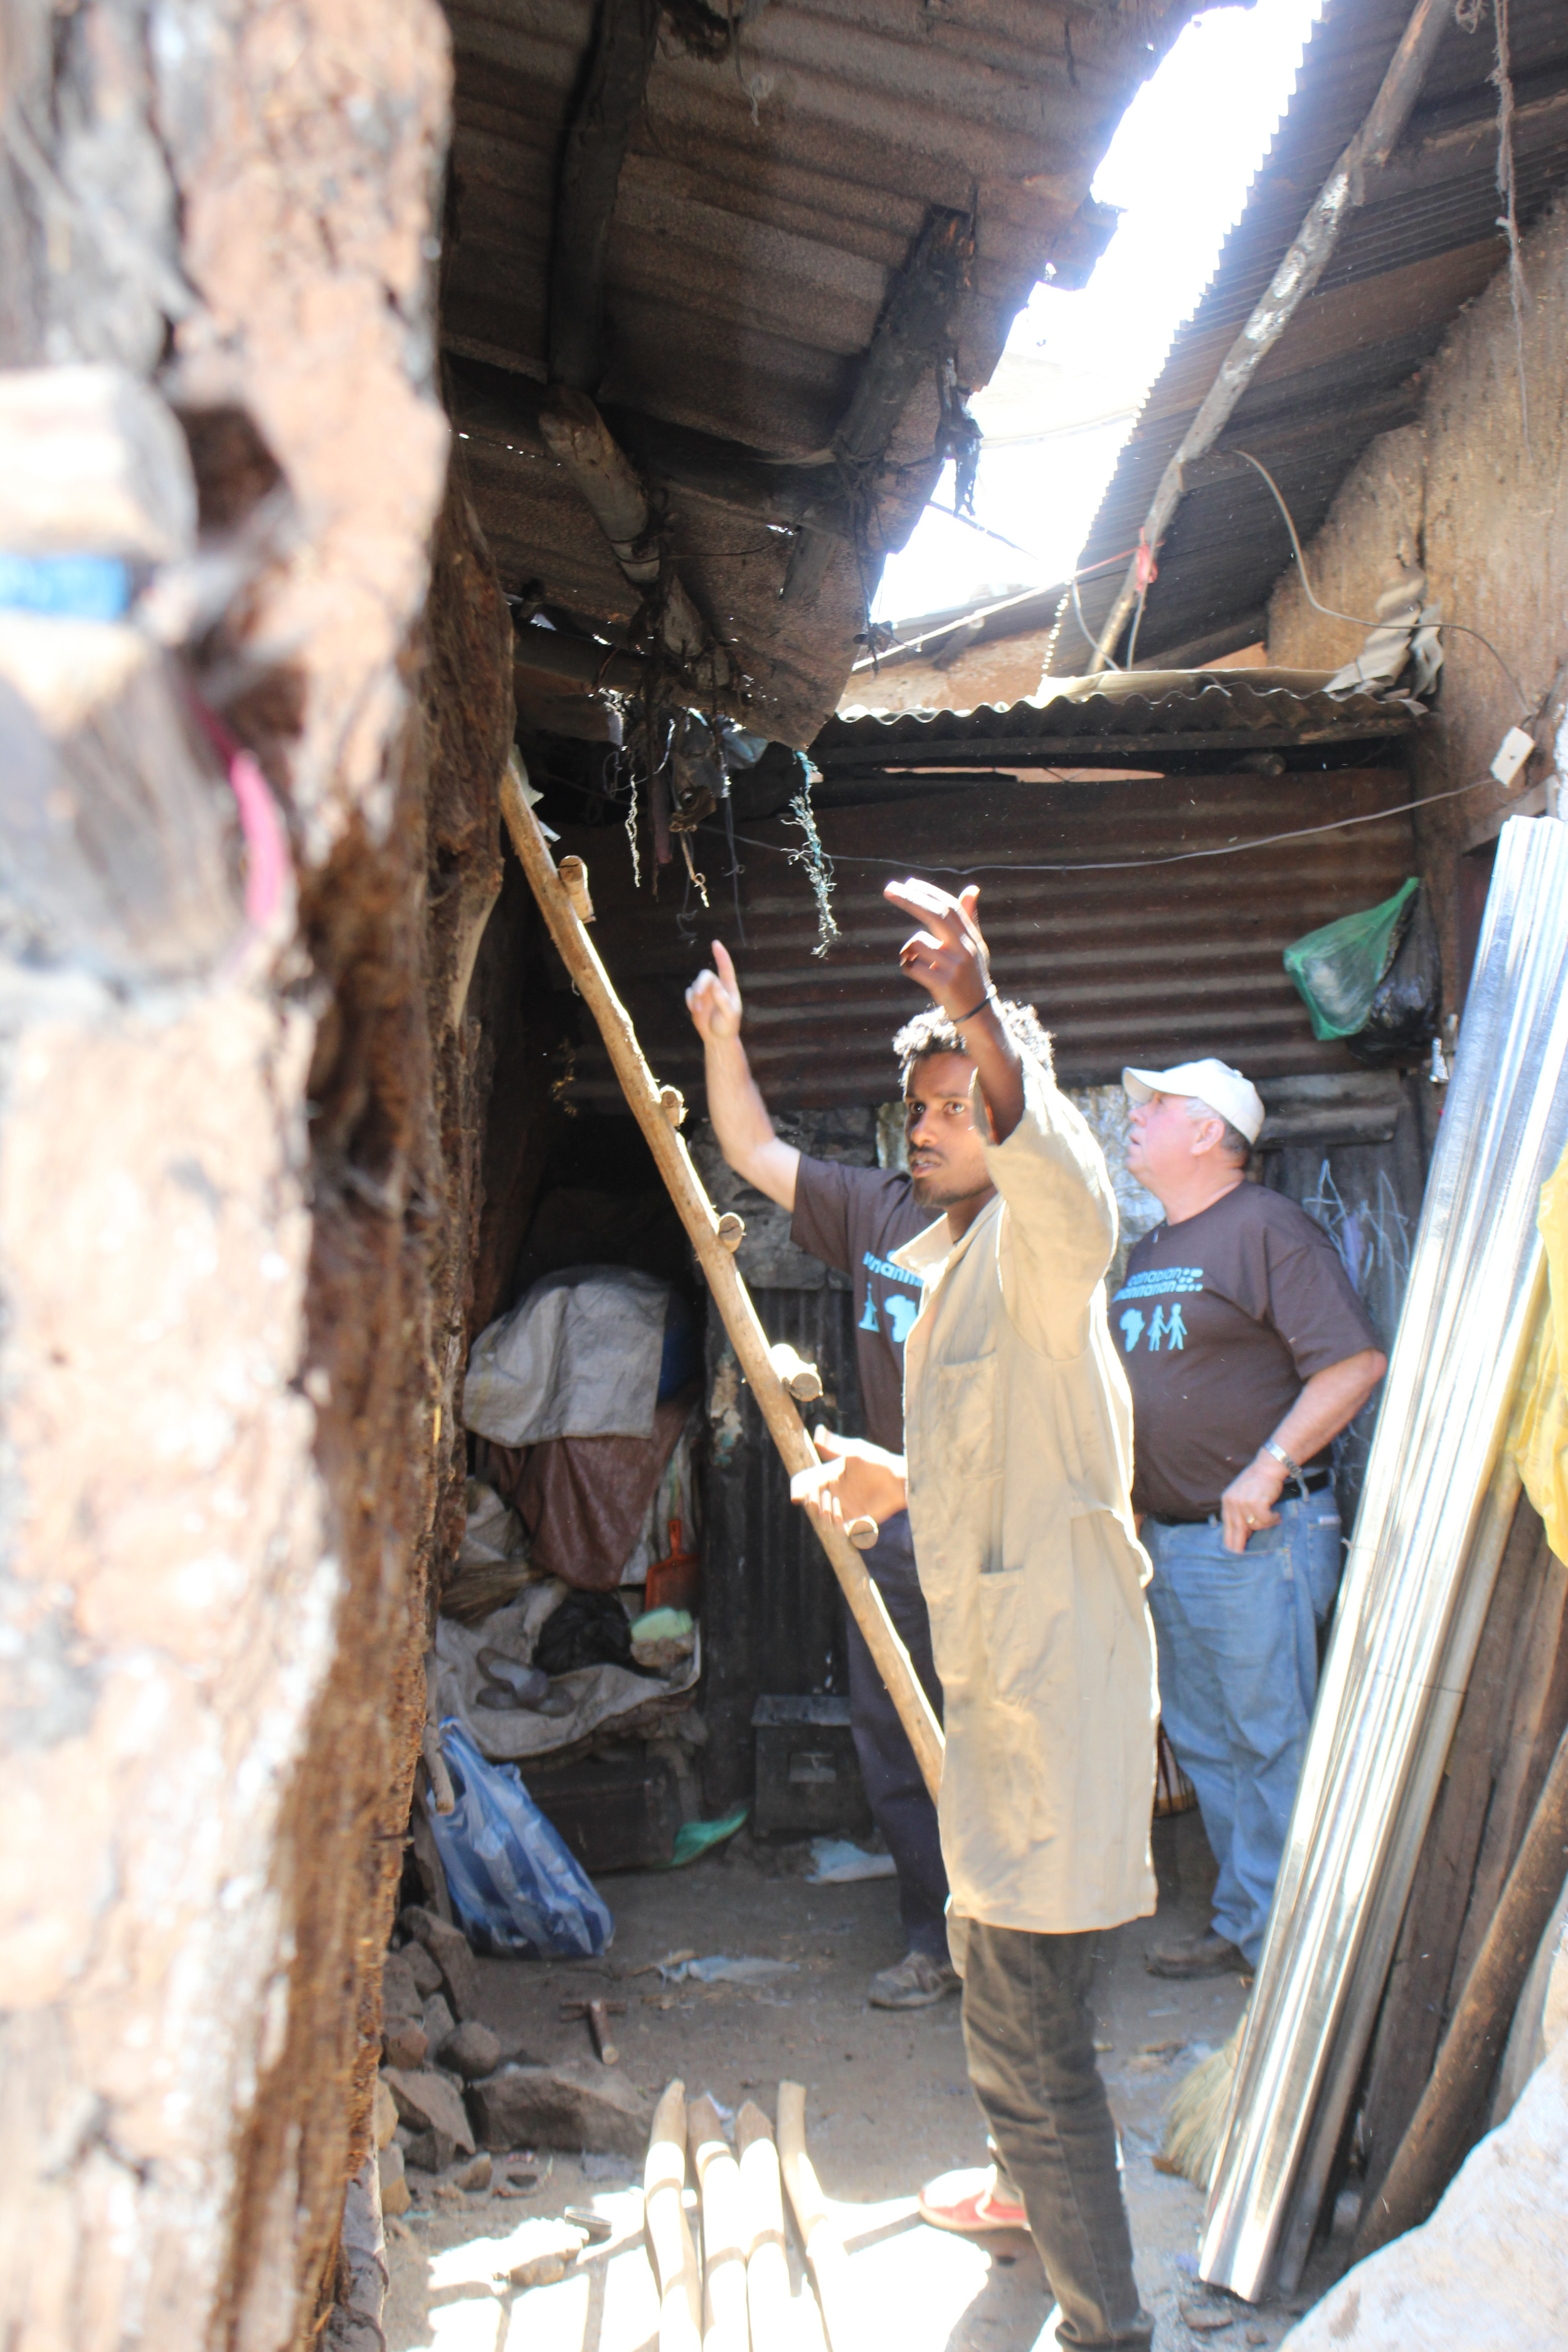 In the confined space, the guys figure out how to dismantle the rusted roof.